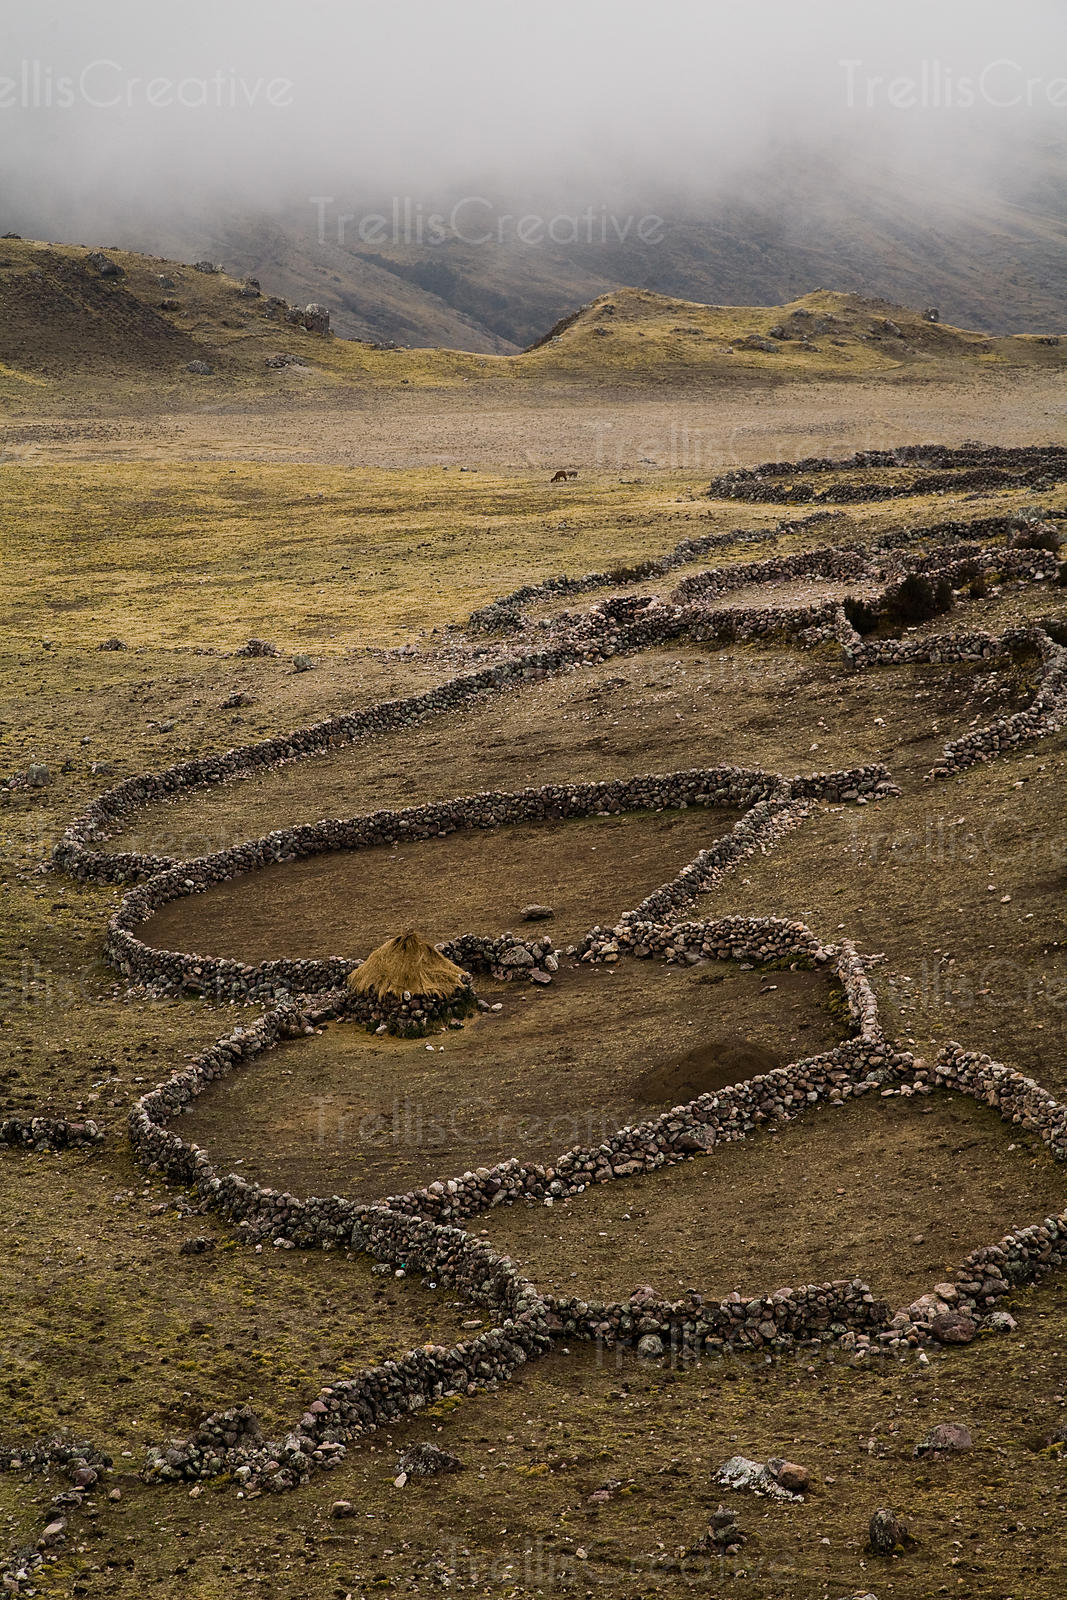 The stone wall rings provide protection from predators when nomadic herders need to rest overnight, Lares Trek, Andes Mountains, Peru